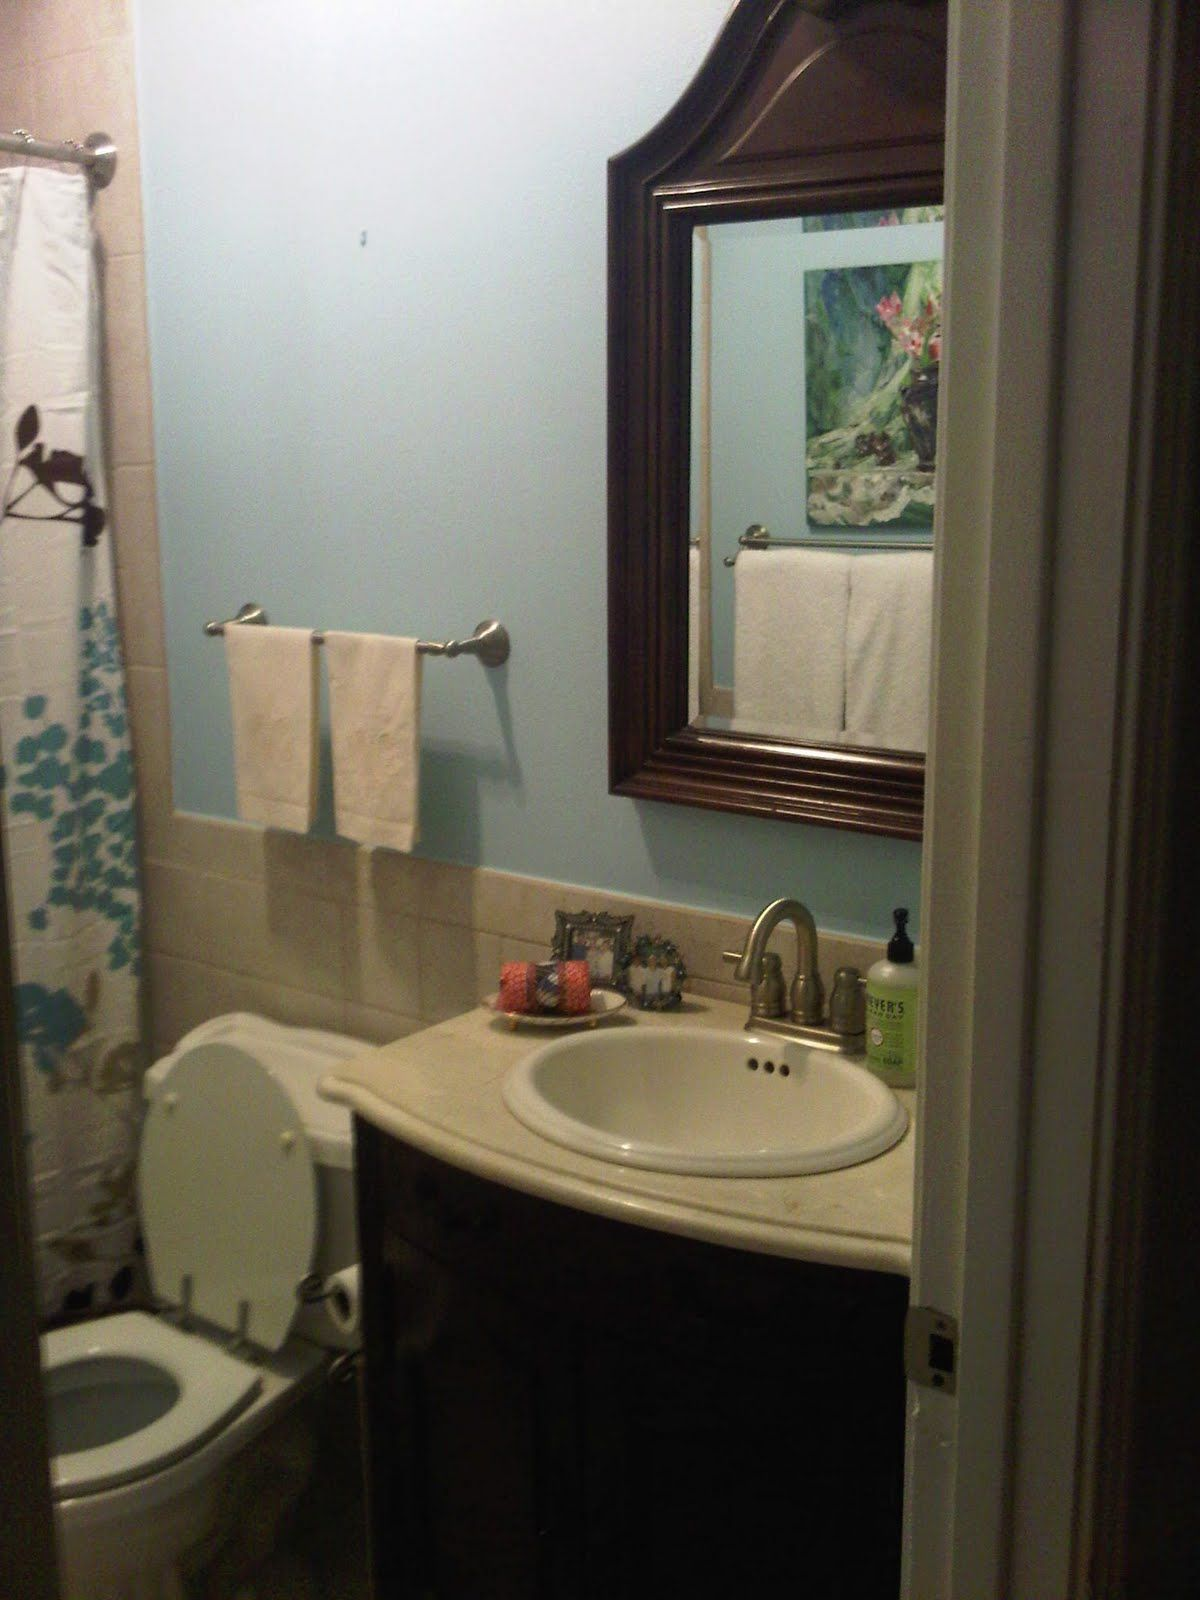 Small bathroom no window paint color google search for Bathroom ideas paint colors